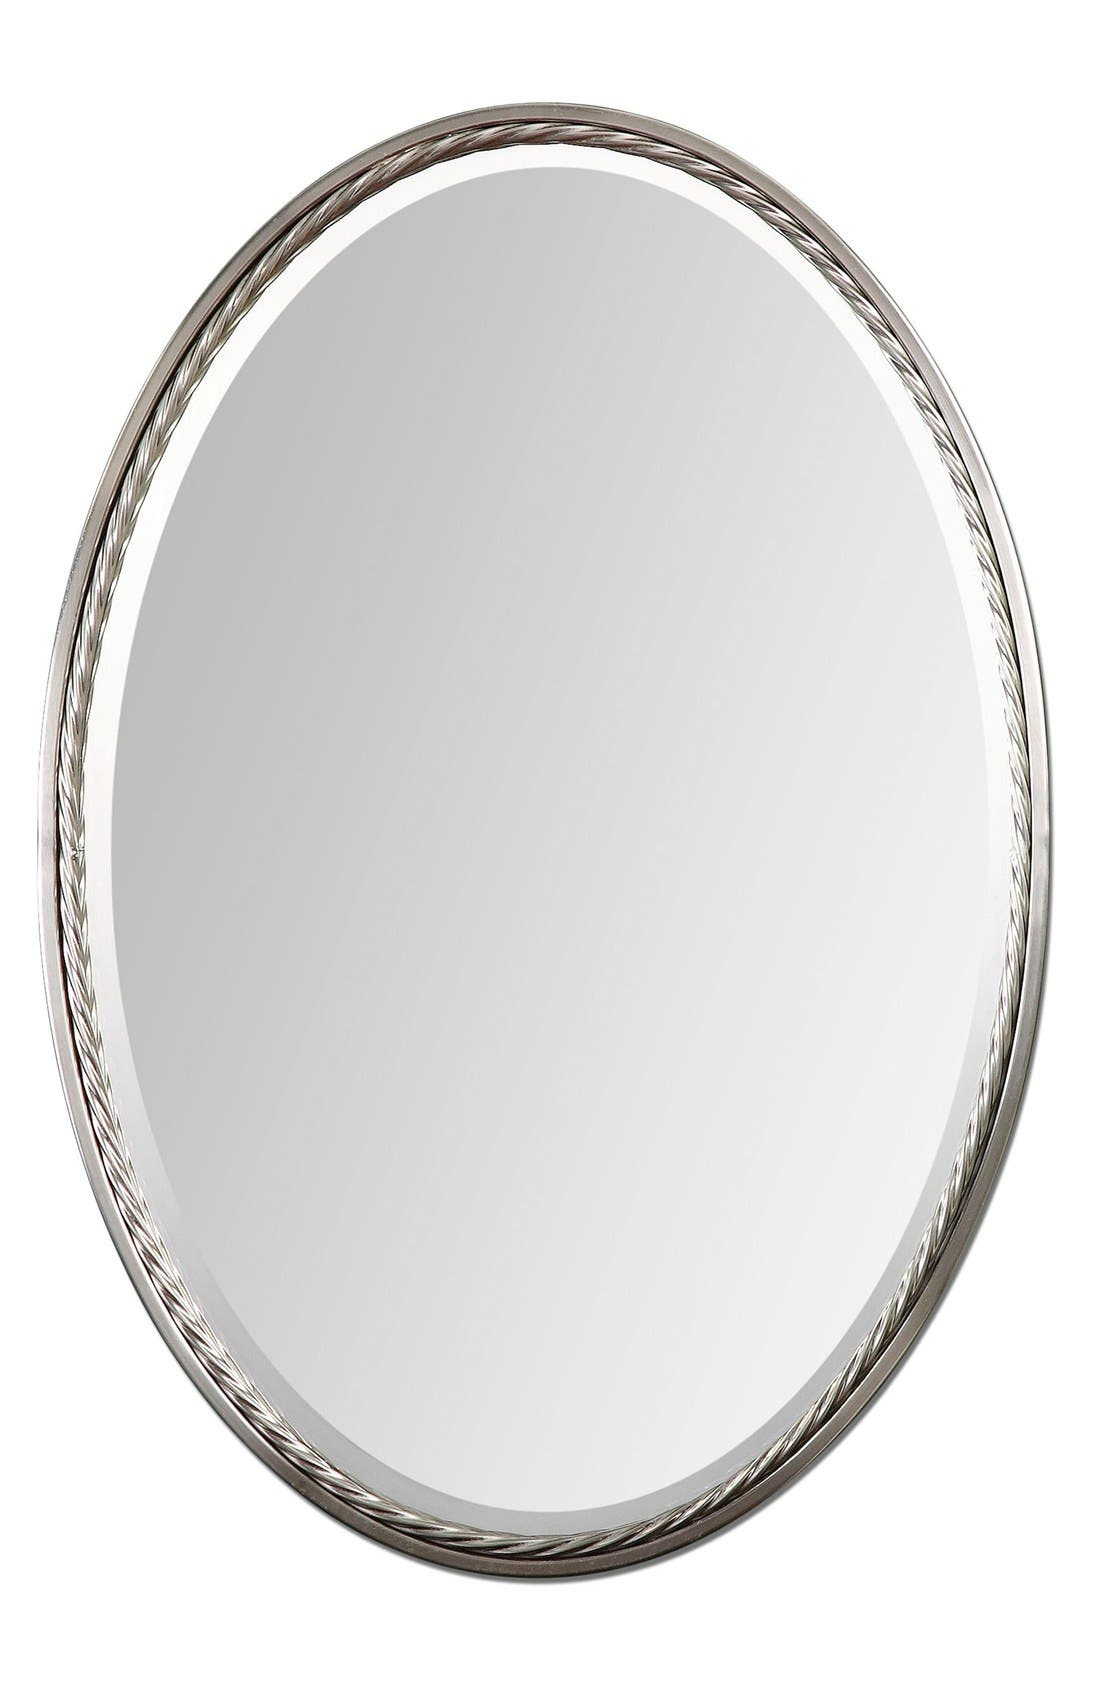 'Casalina' Oval Mirror,                         Main,                         color,